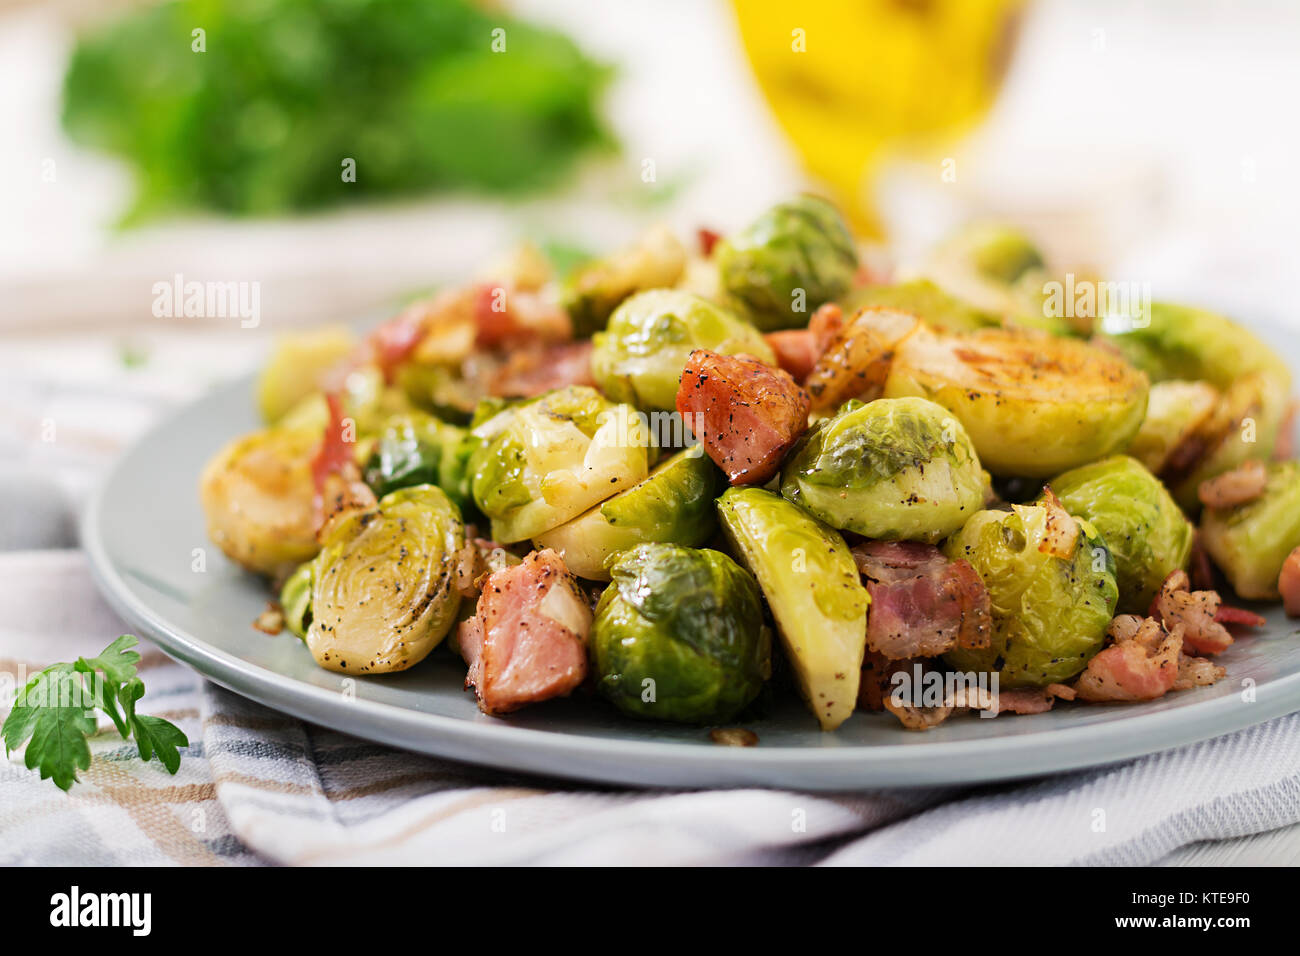 Brussels sprouts. Roasted Brussels sprouts with bacon. Delicious lunch. Stock Photo